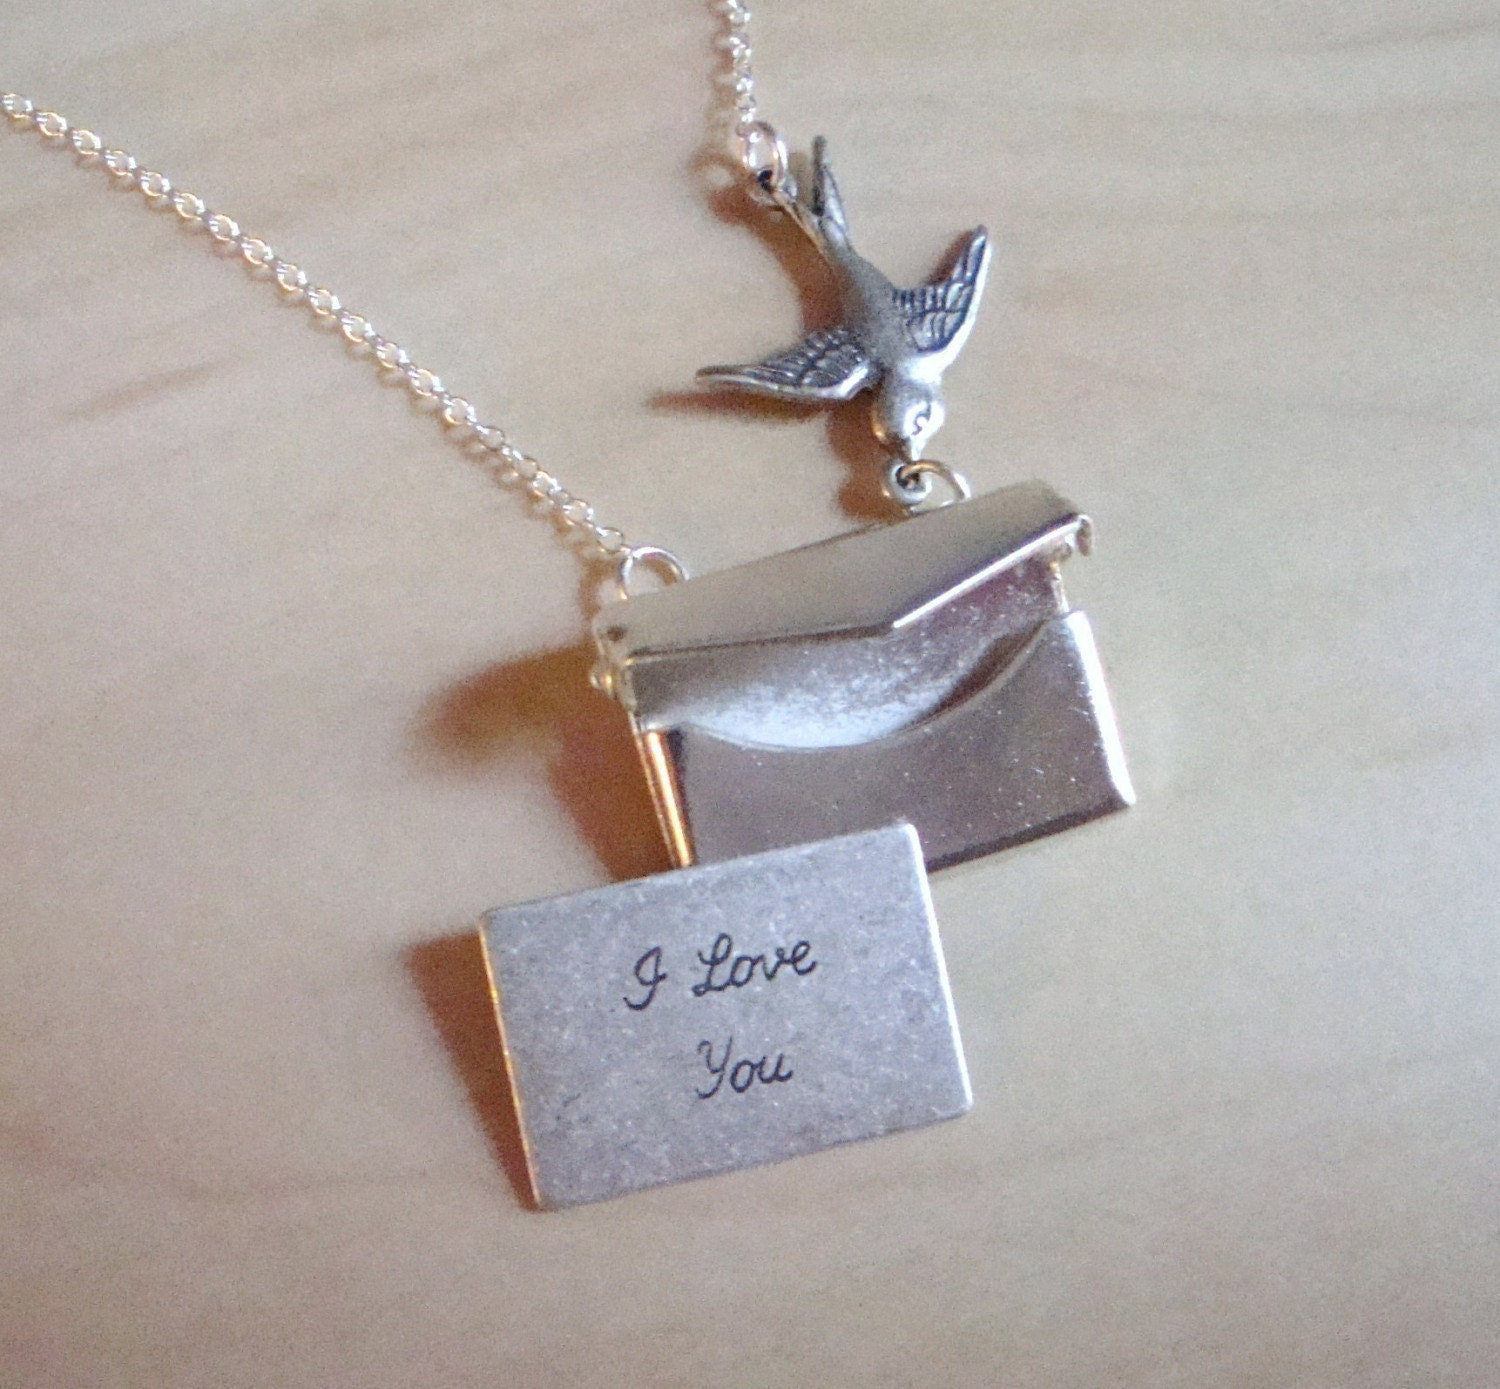 Envelope Necklace with Secret Note. FREE WORLDWIDE SHIPPING.